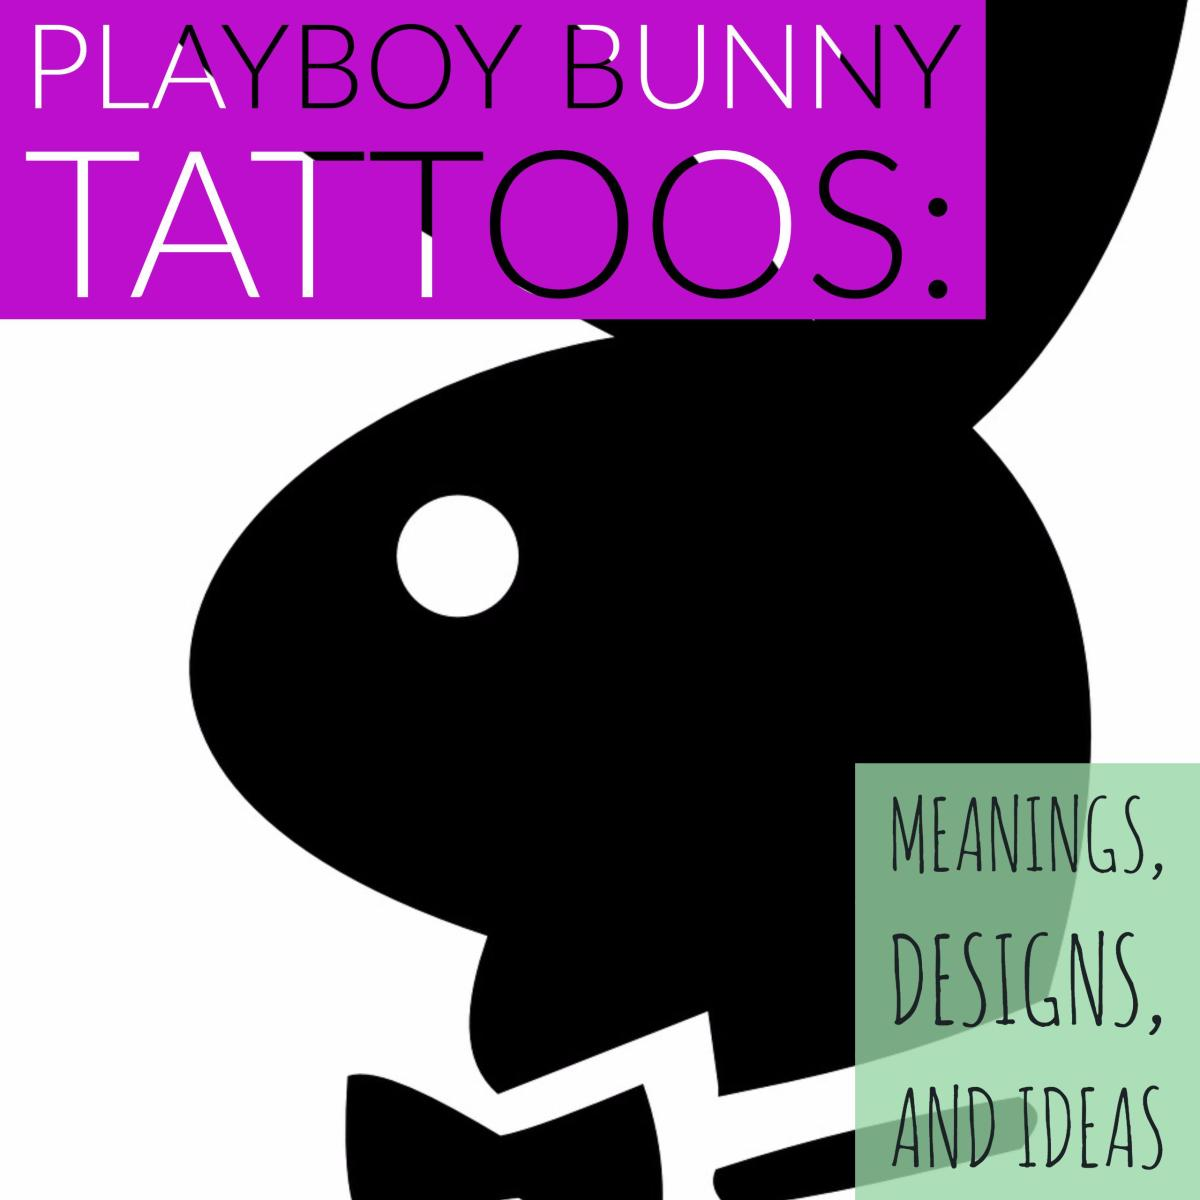 Learn more about the meaning behind a tattoo of the Playboy bunny, and see some tattoo designs for inspiration.